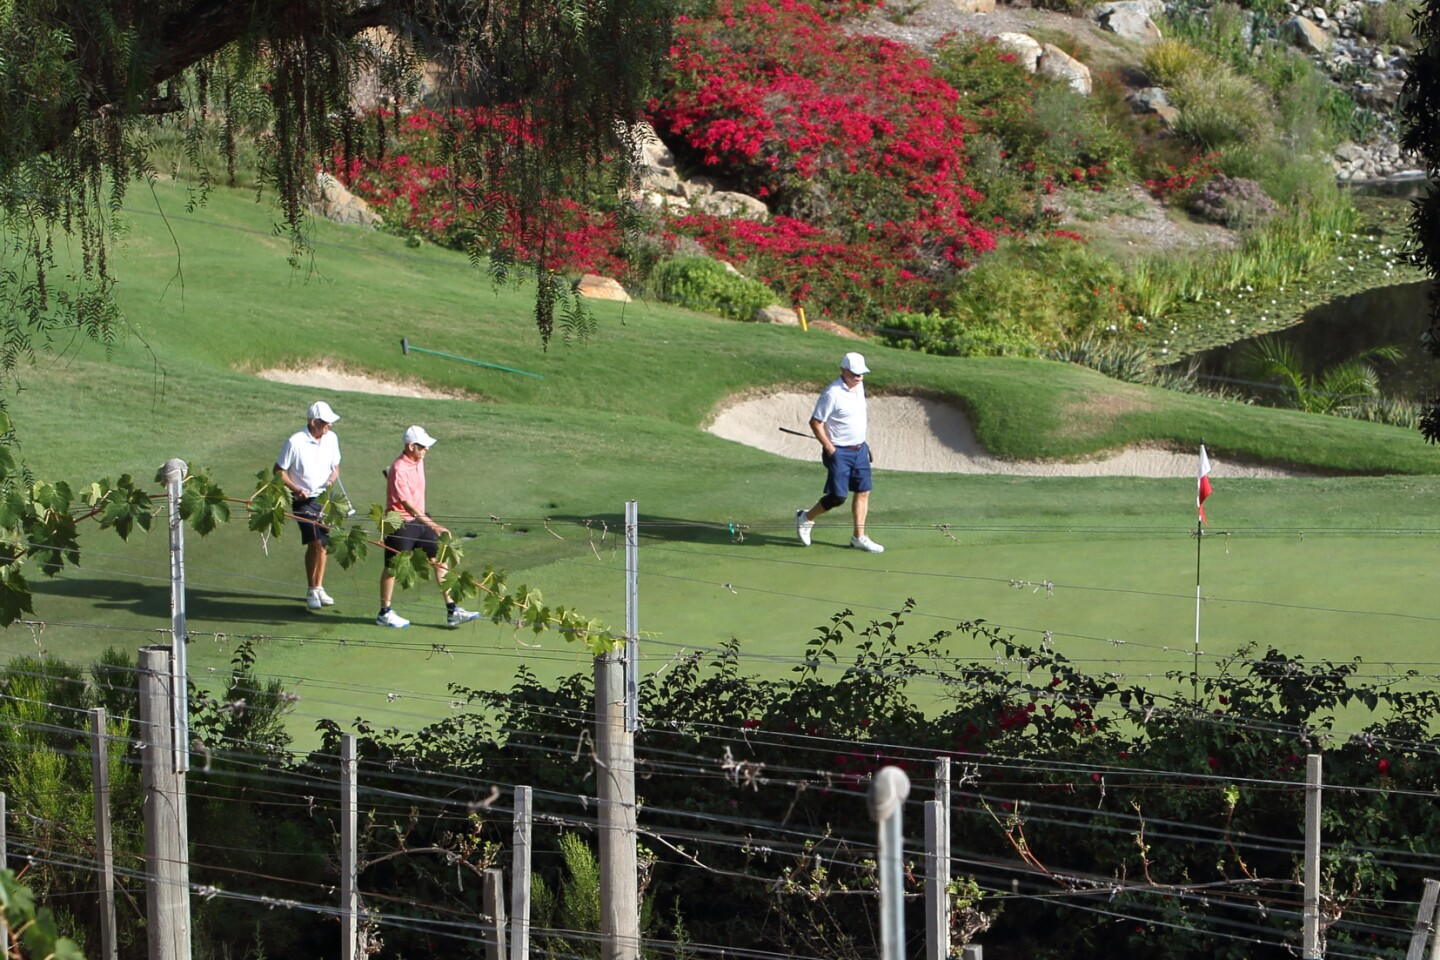 Players on the 18th green at The Bridges